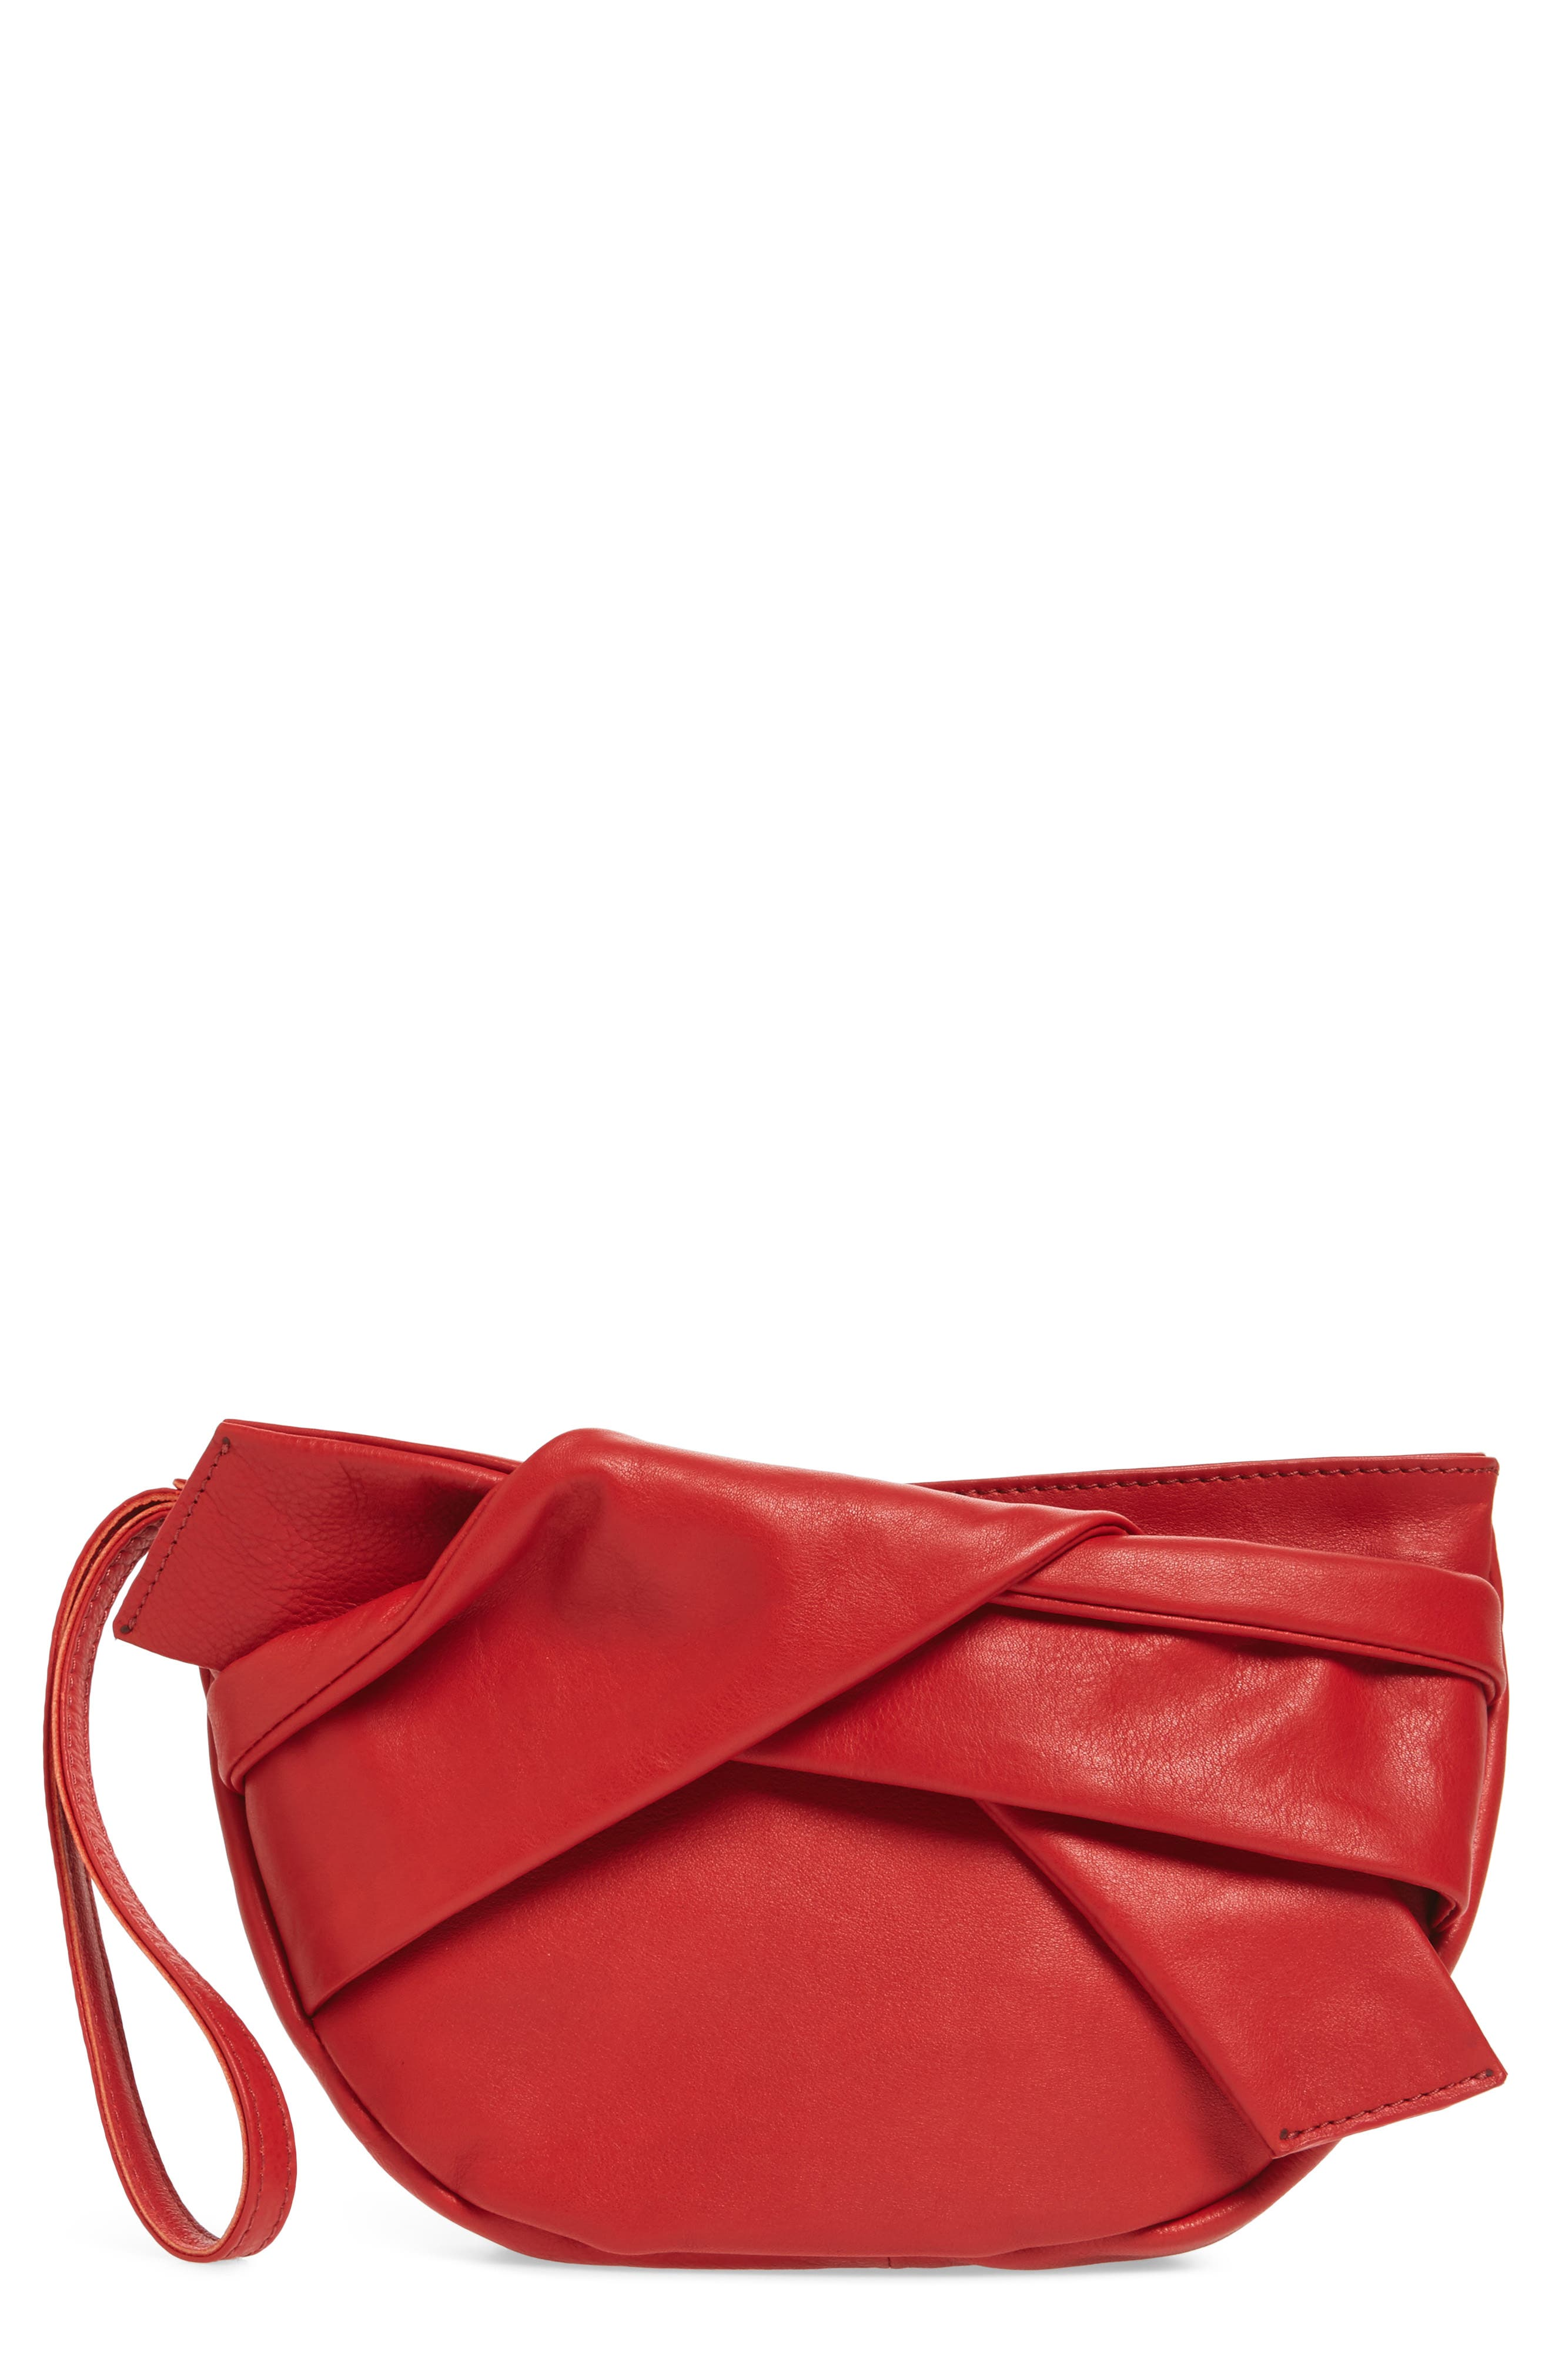 Jasmine Leather Clutch,                             Main thumbnail 1, color,                             Red